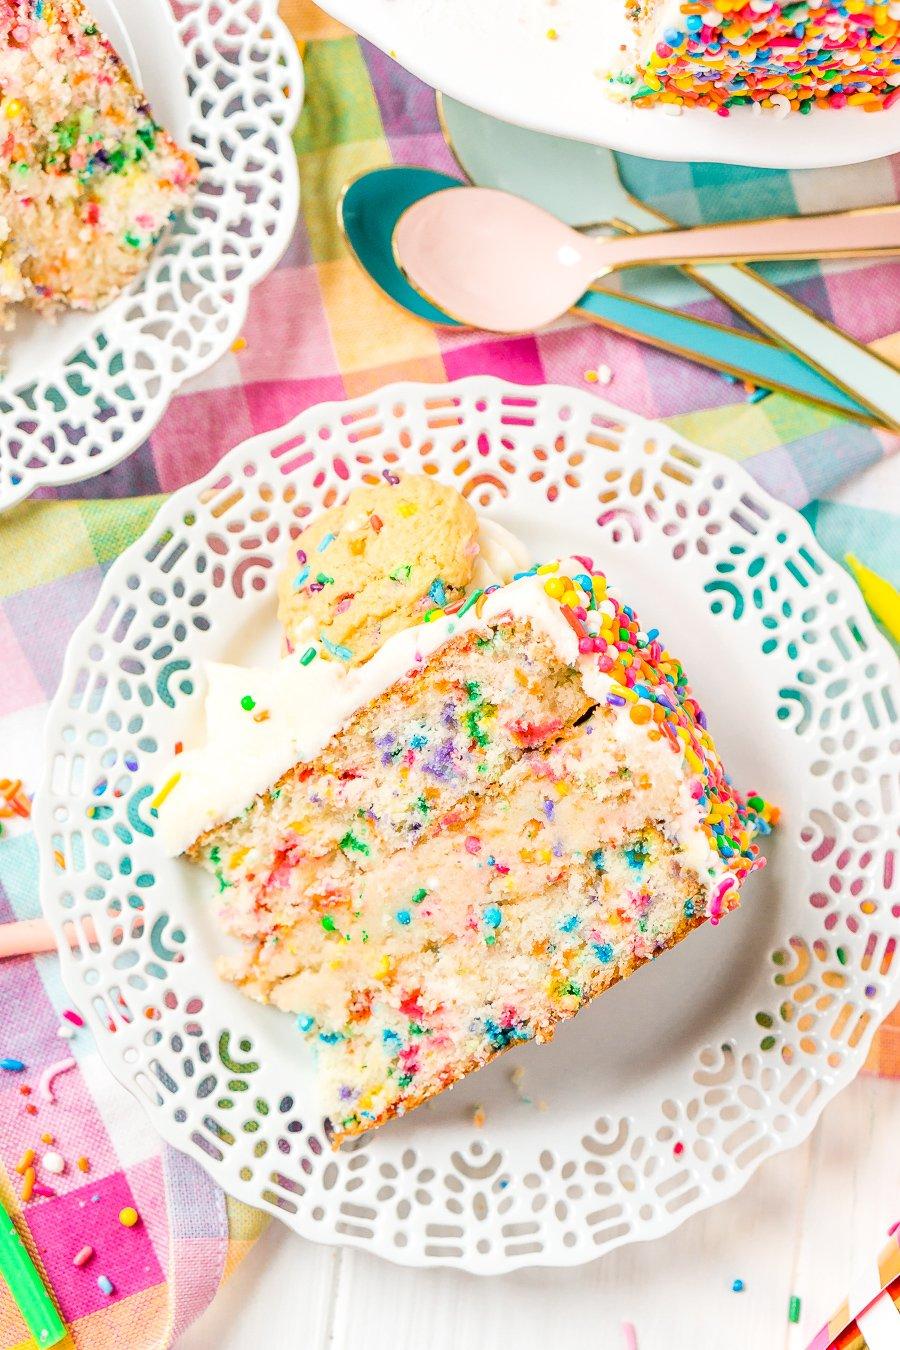 This Funfetti Sugar Cookie Dough Cake is an over the top cake made with two layers of white almond cake loaded with sprinkles and a layer of edible sugar cookie dough, then topped with classic vanilla buttercream!